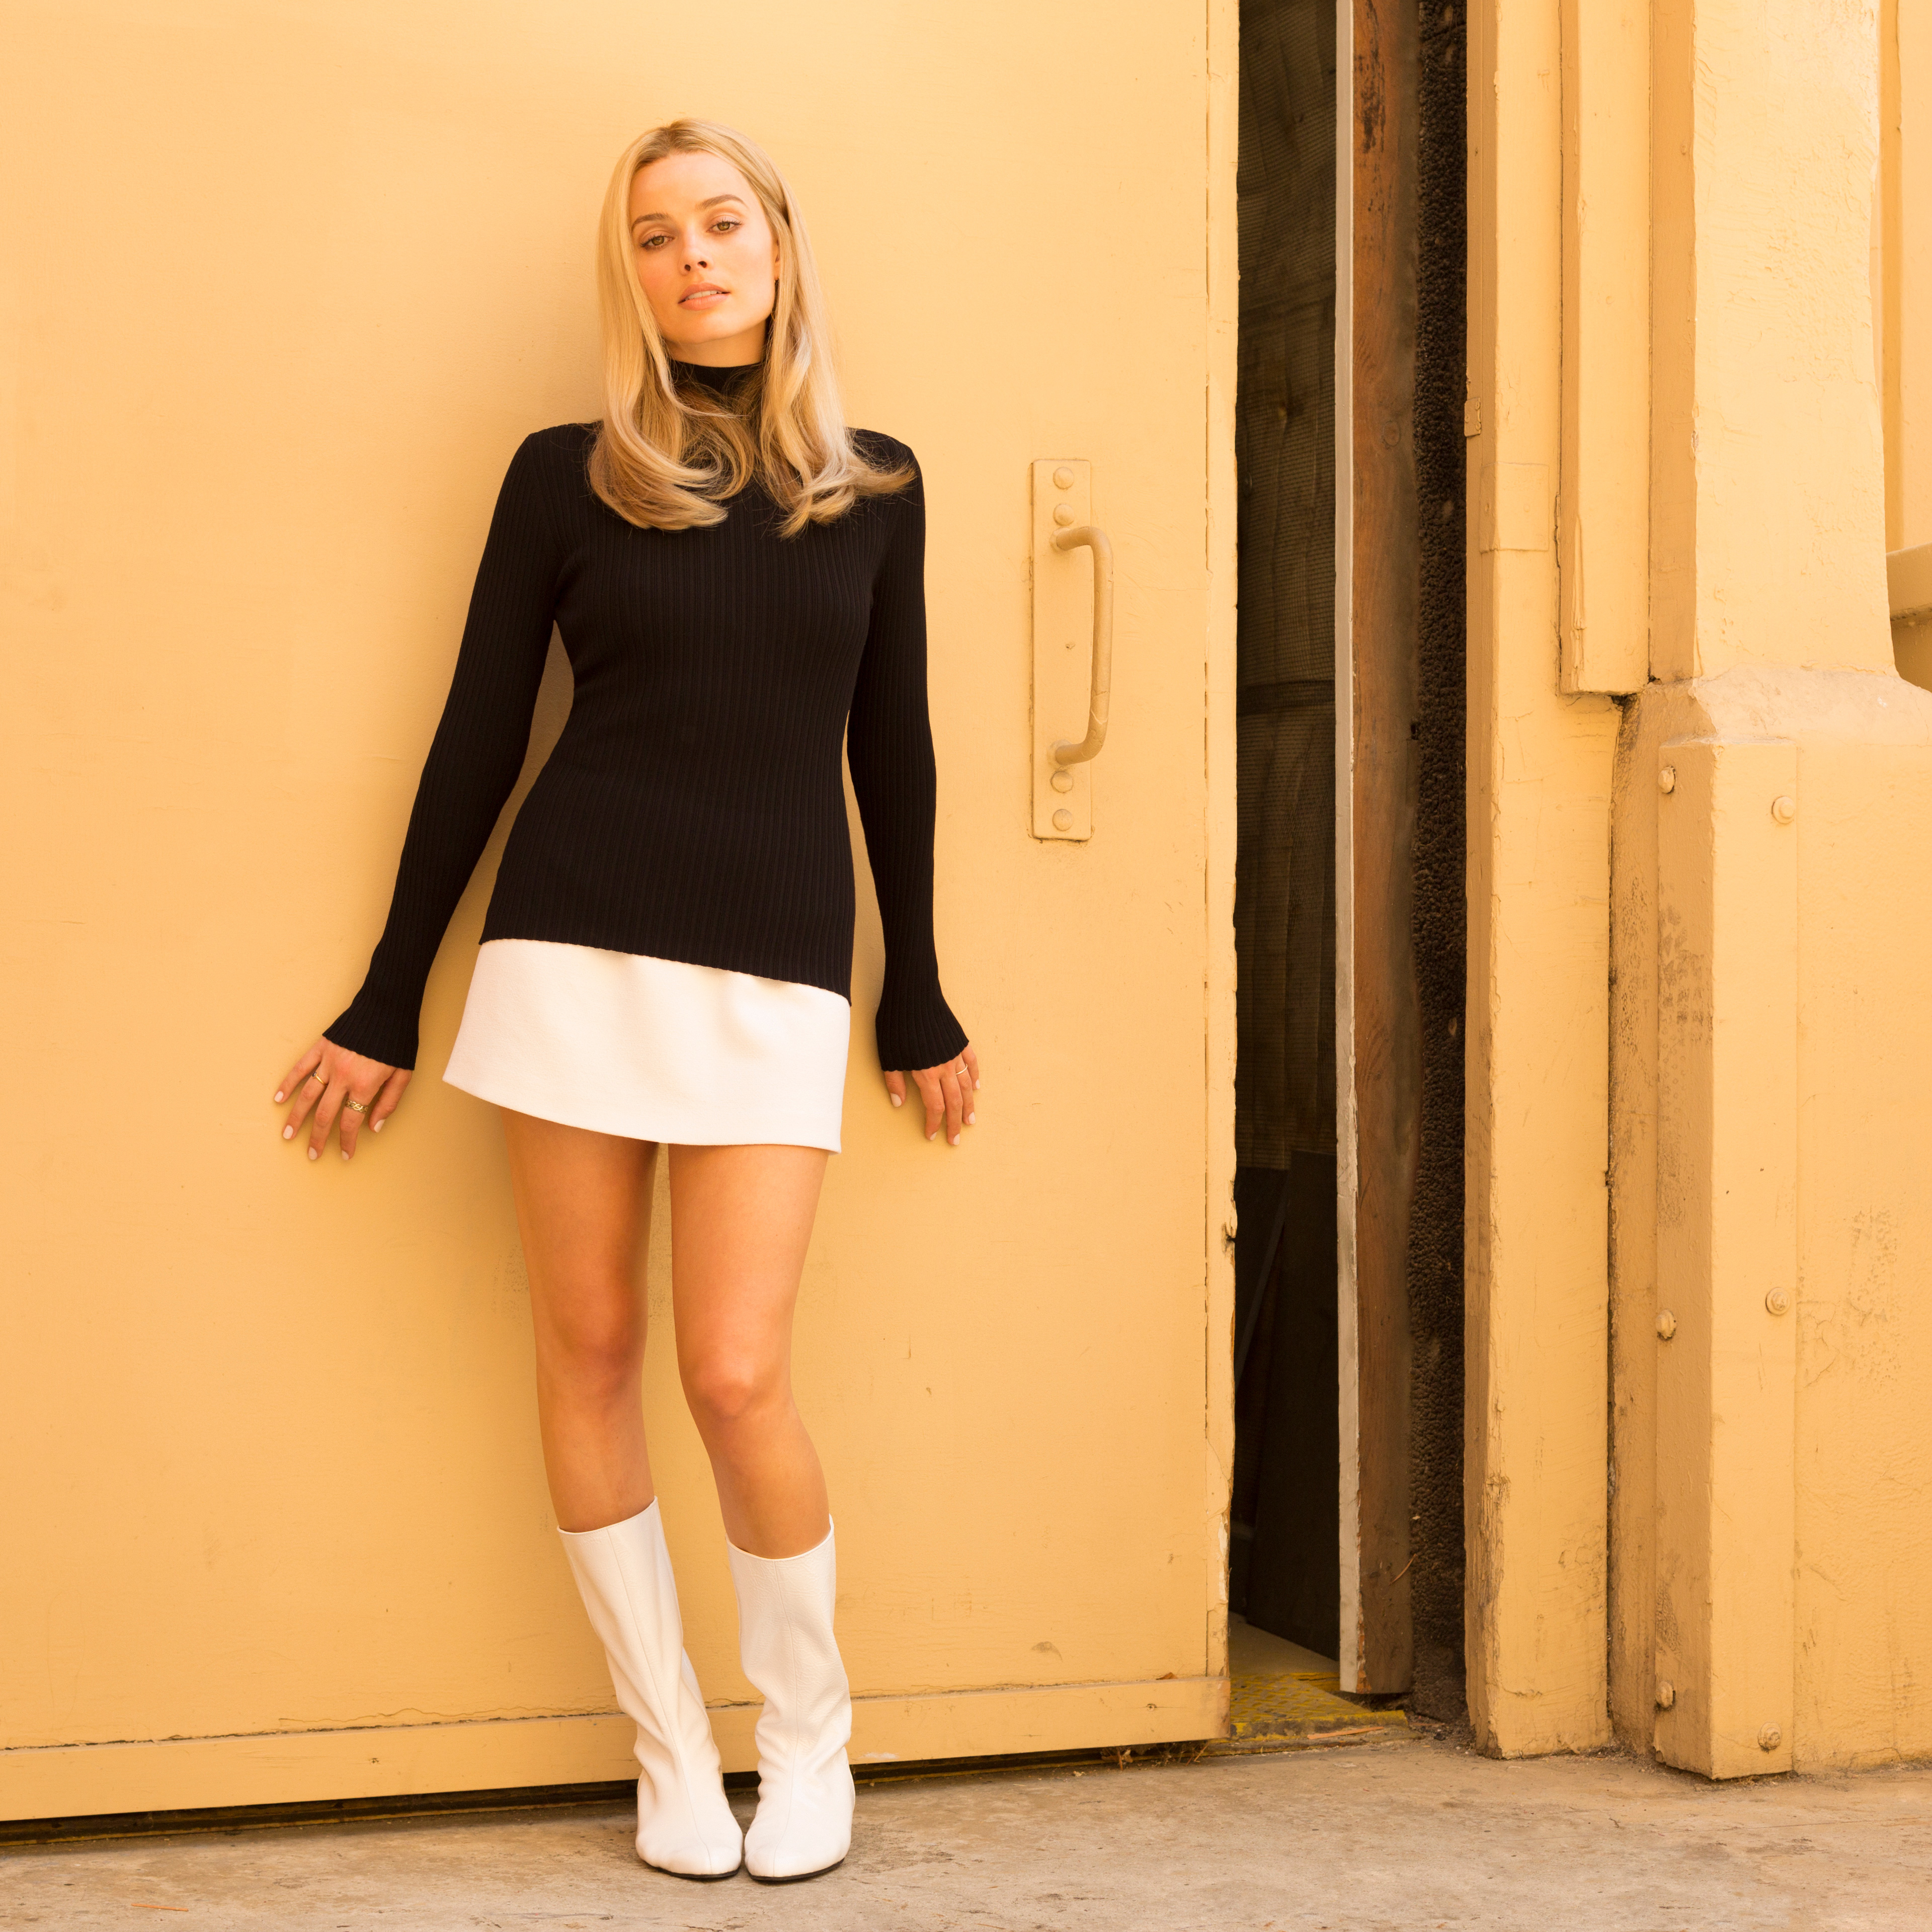 Margot Robbie As Sharon Tate In Once Upon A Time In